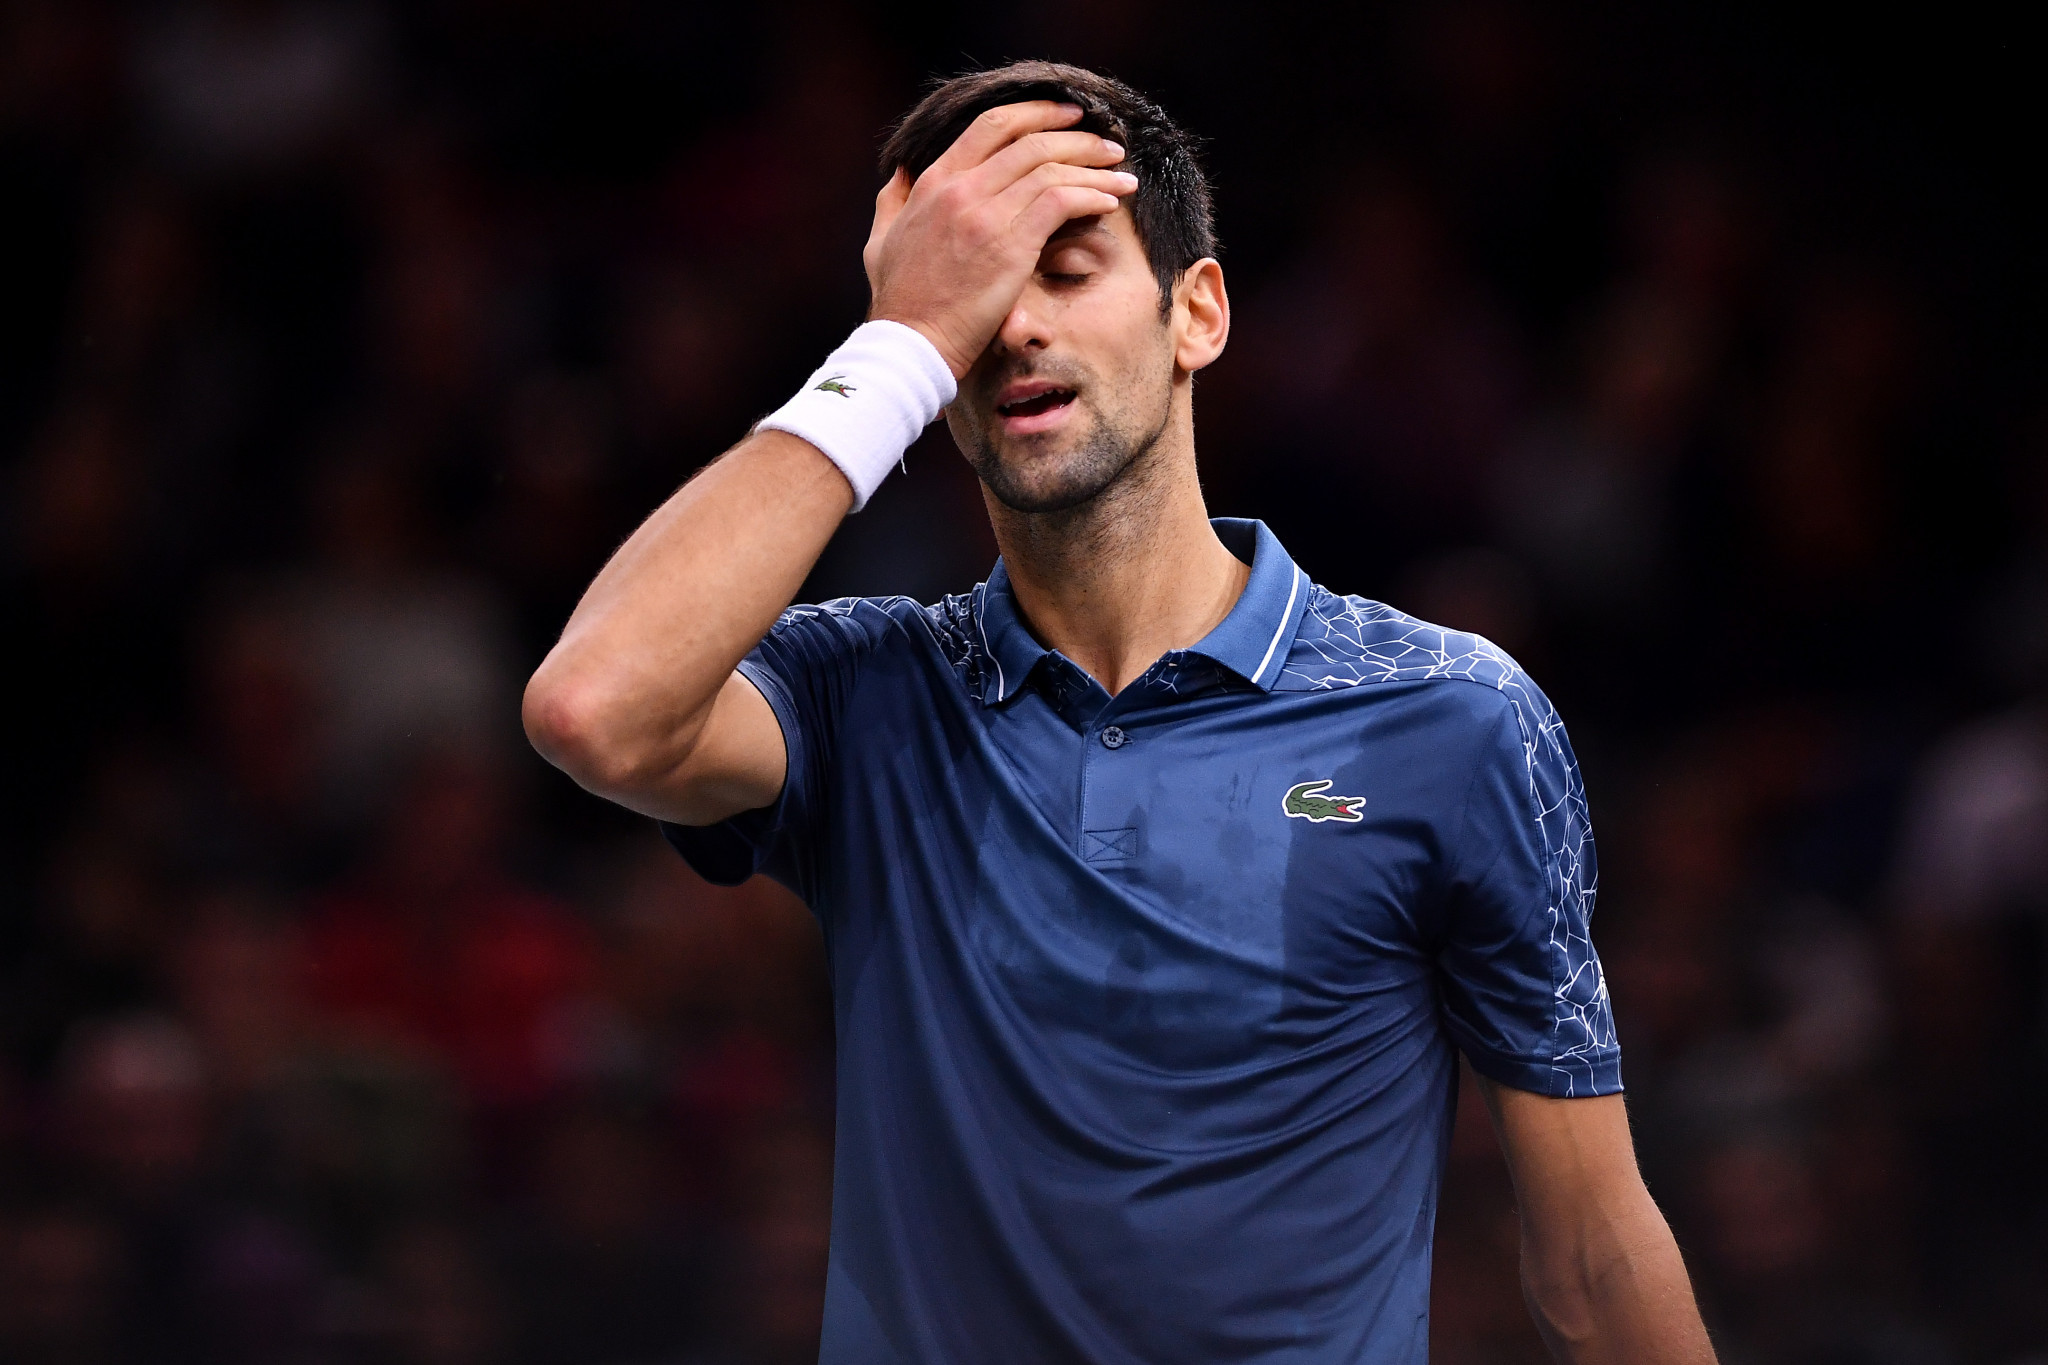 World number one Djokovic tests positive for coronavirus after organising Adria Tour